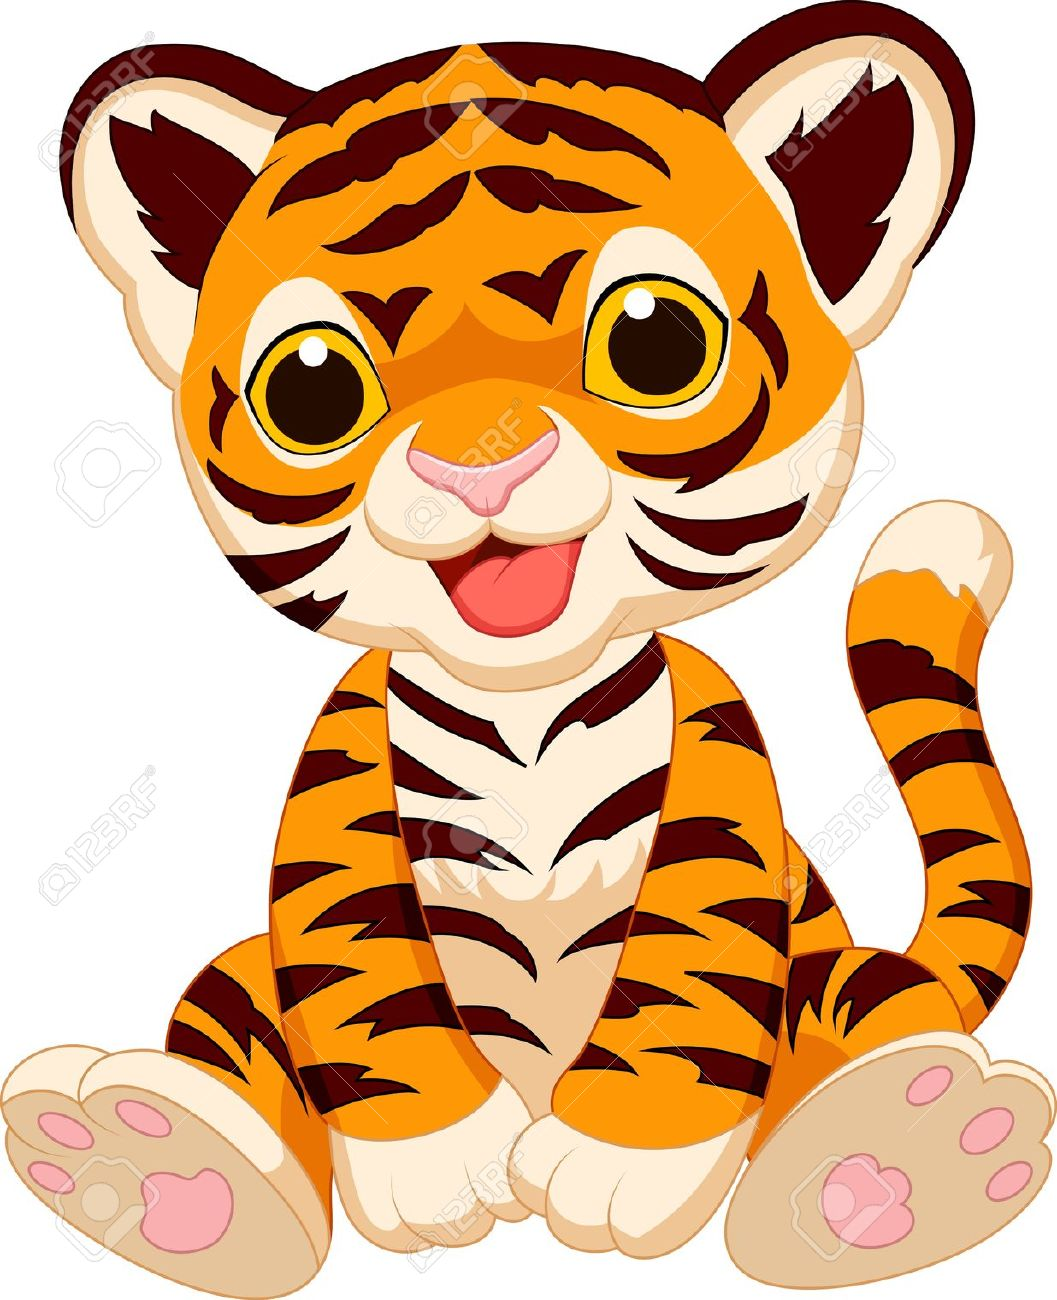 Cute Tiger Clipart | Free download on ClipArtMag